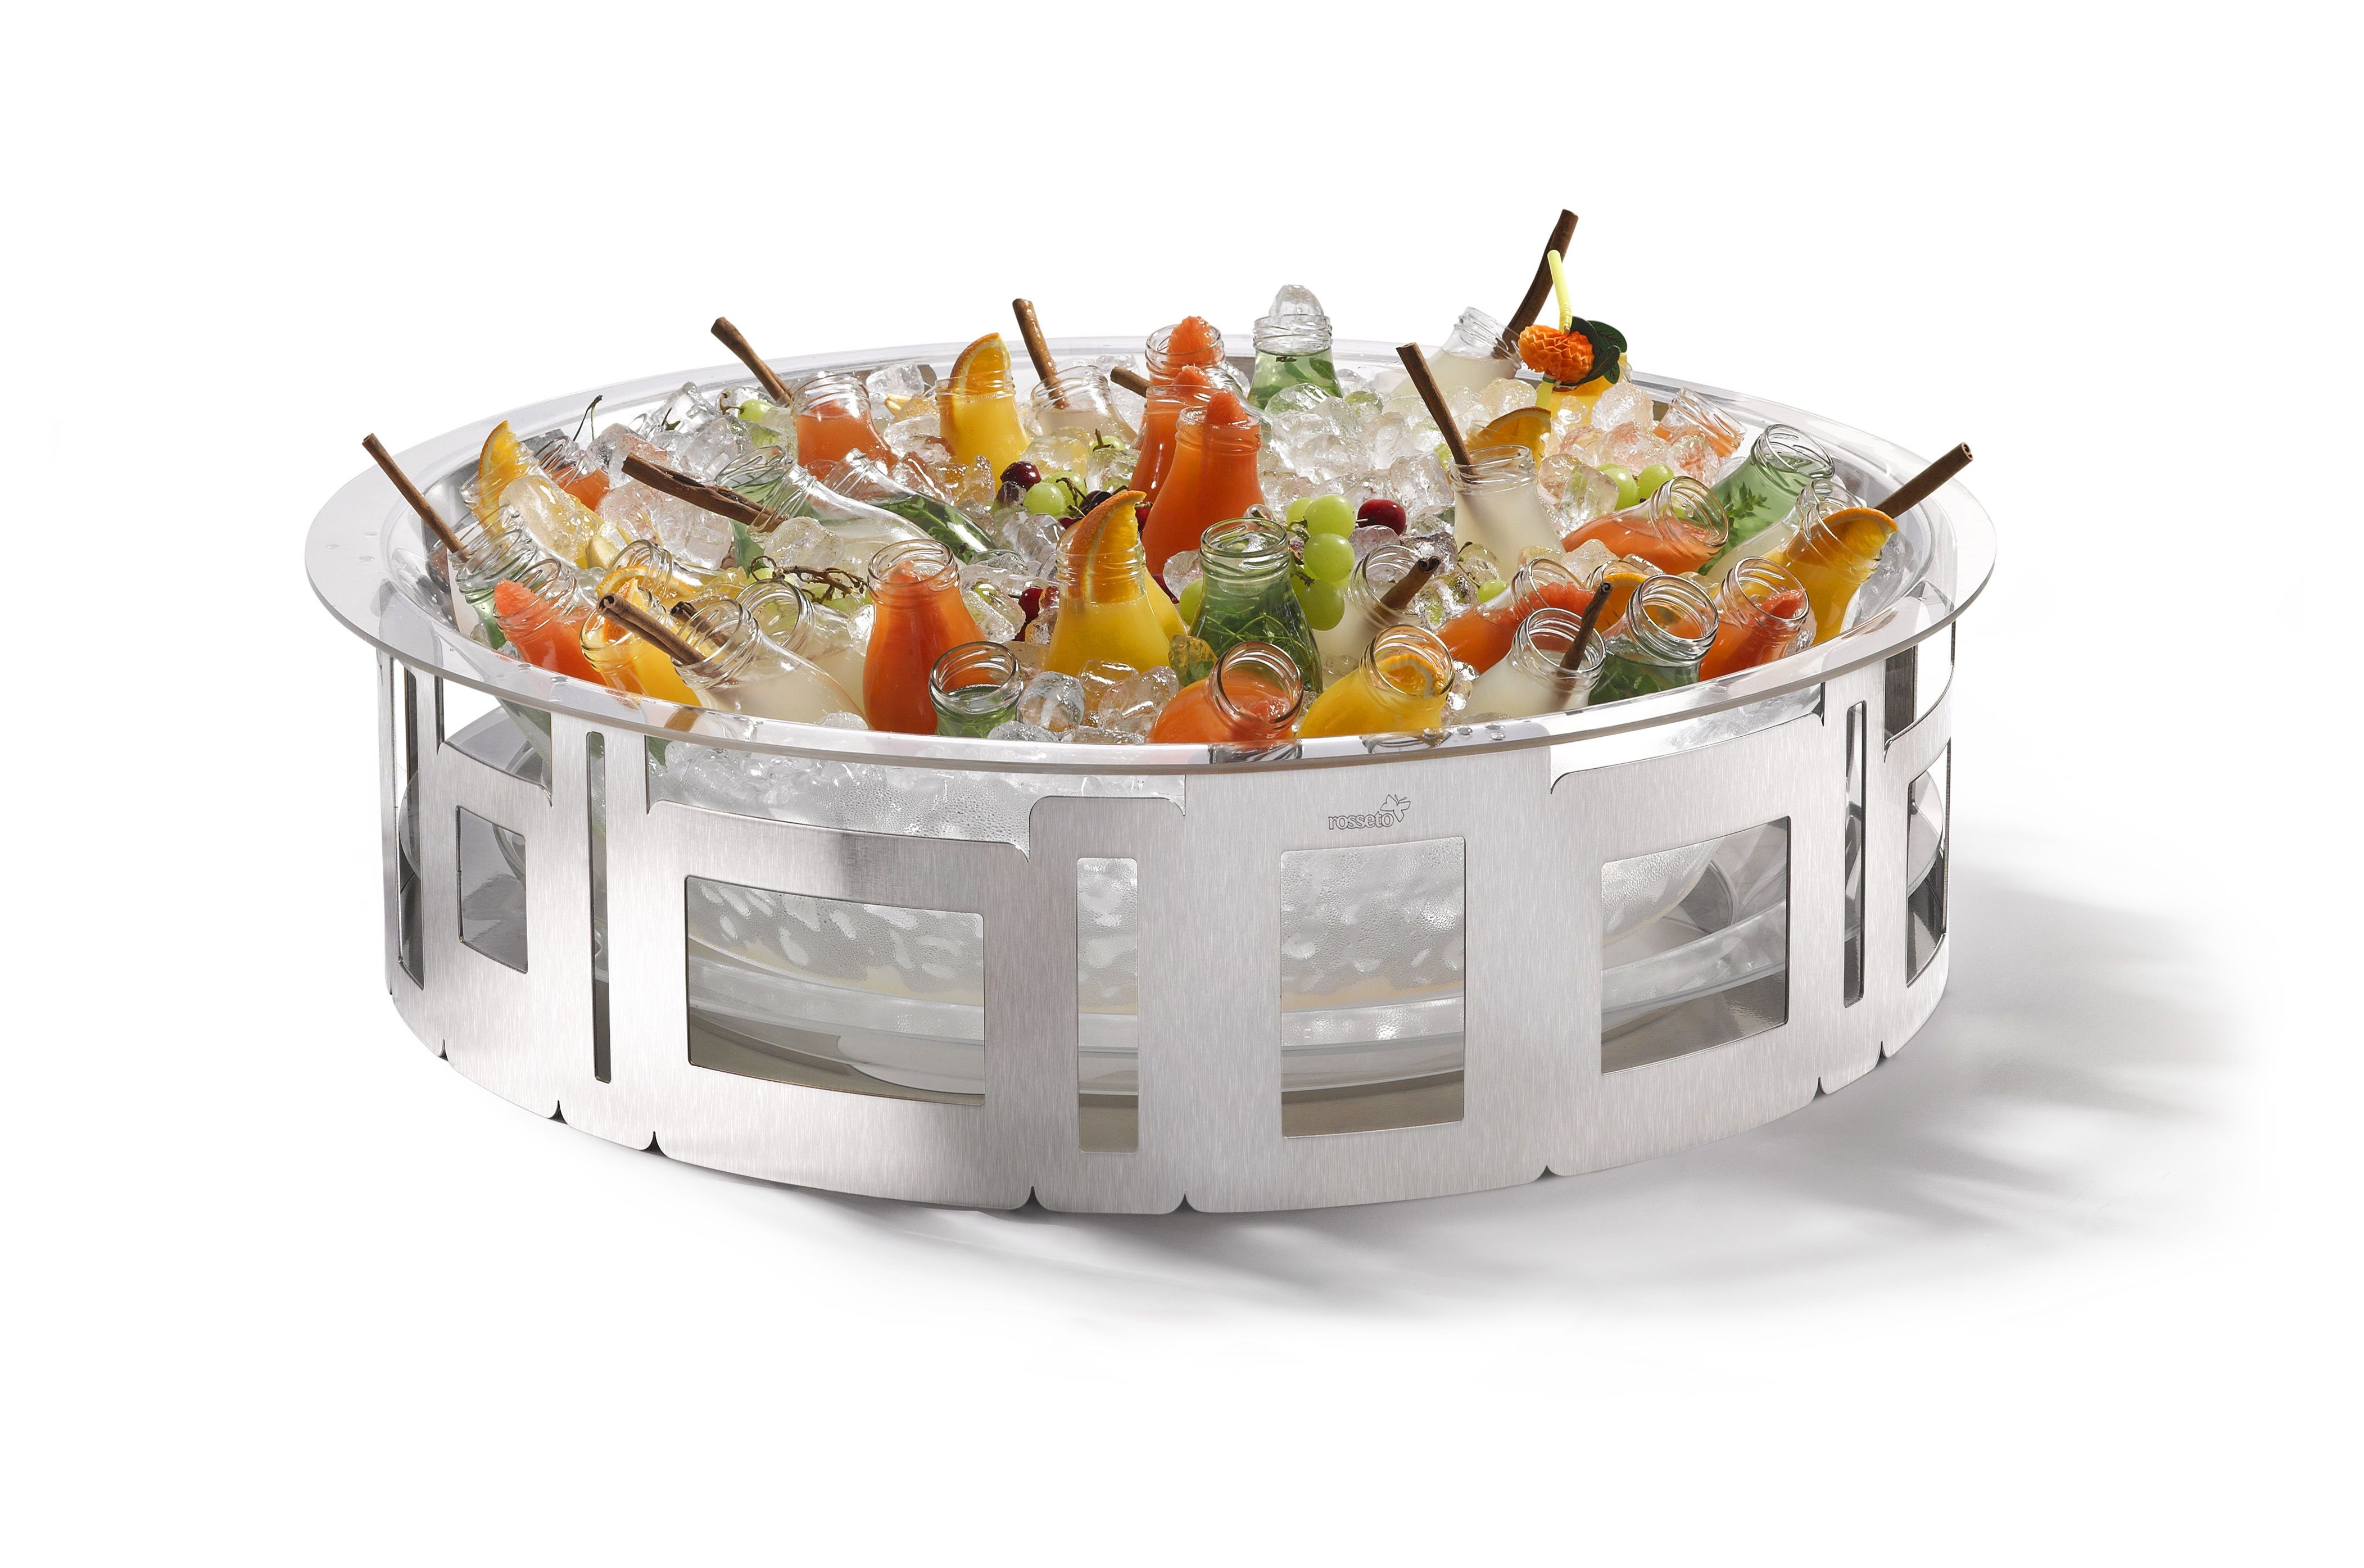 """Rosseto SM187 Mega Round Stainless Steel Ice Tub with Acrylic Insert 29"""" x 29"""" x 7.73""""H"""